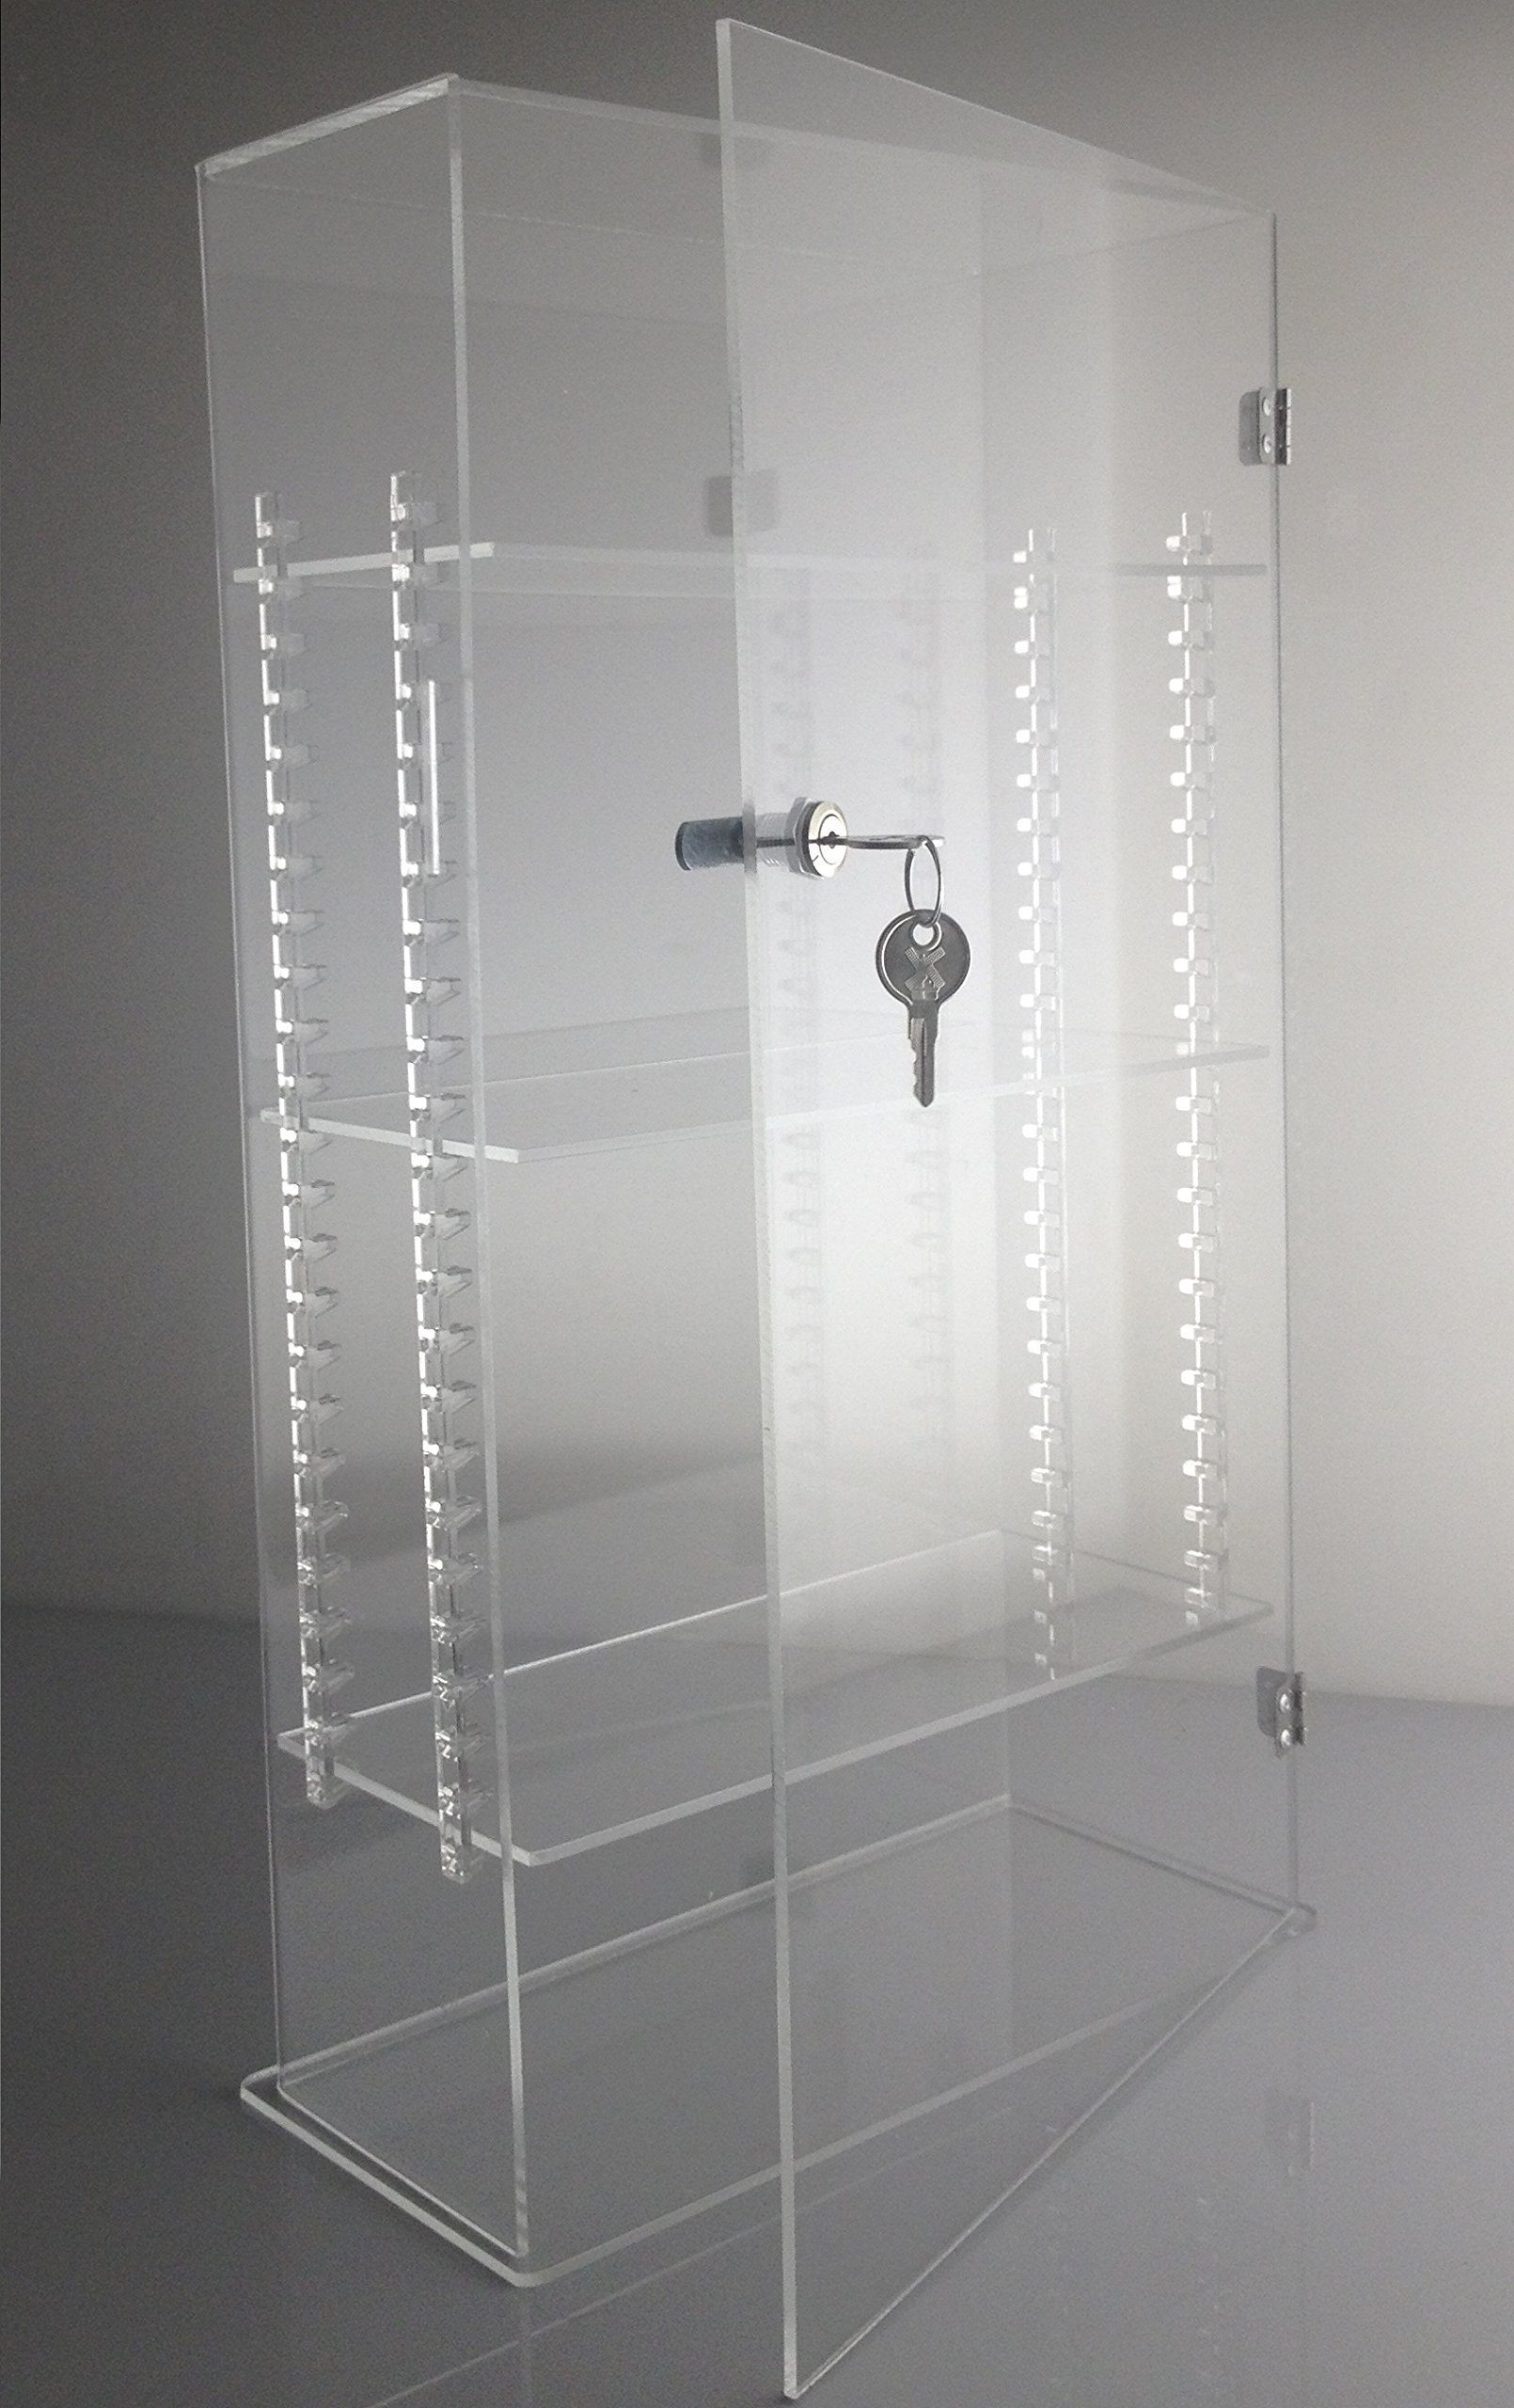 T'z Tagz Brand Acrylic Lucite Showcase with ADJUSTABLE SHELVES Jewelry Pastry Bakery Counter Display W/door & Lock (10'' X 4'' X 18.25''h)